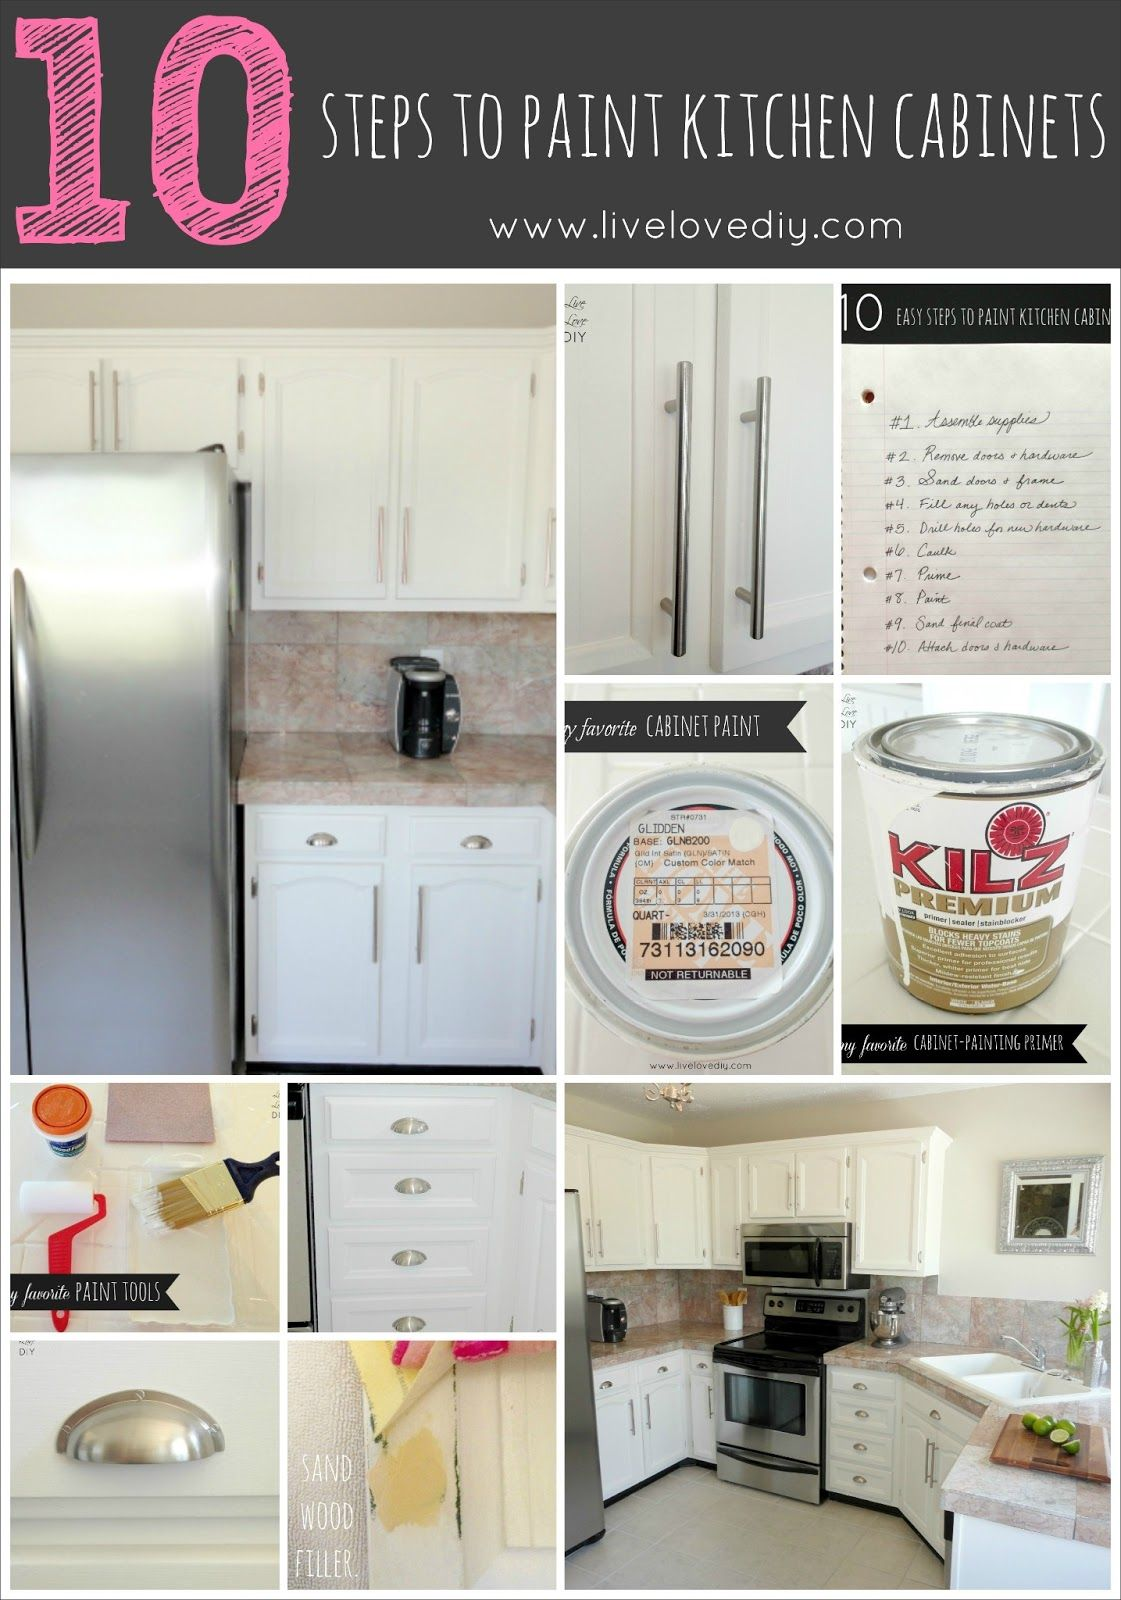 How To Paint Kitchen Cabinets In 10 Easy Steps Kitchen Paint Painting Kitchen Cabinets Kitchen Cabinets